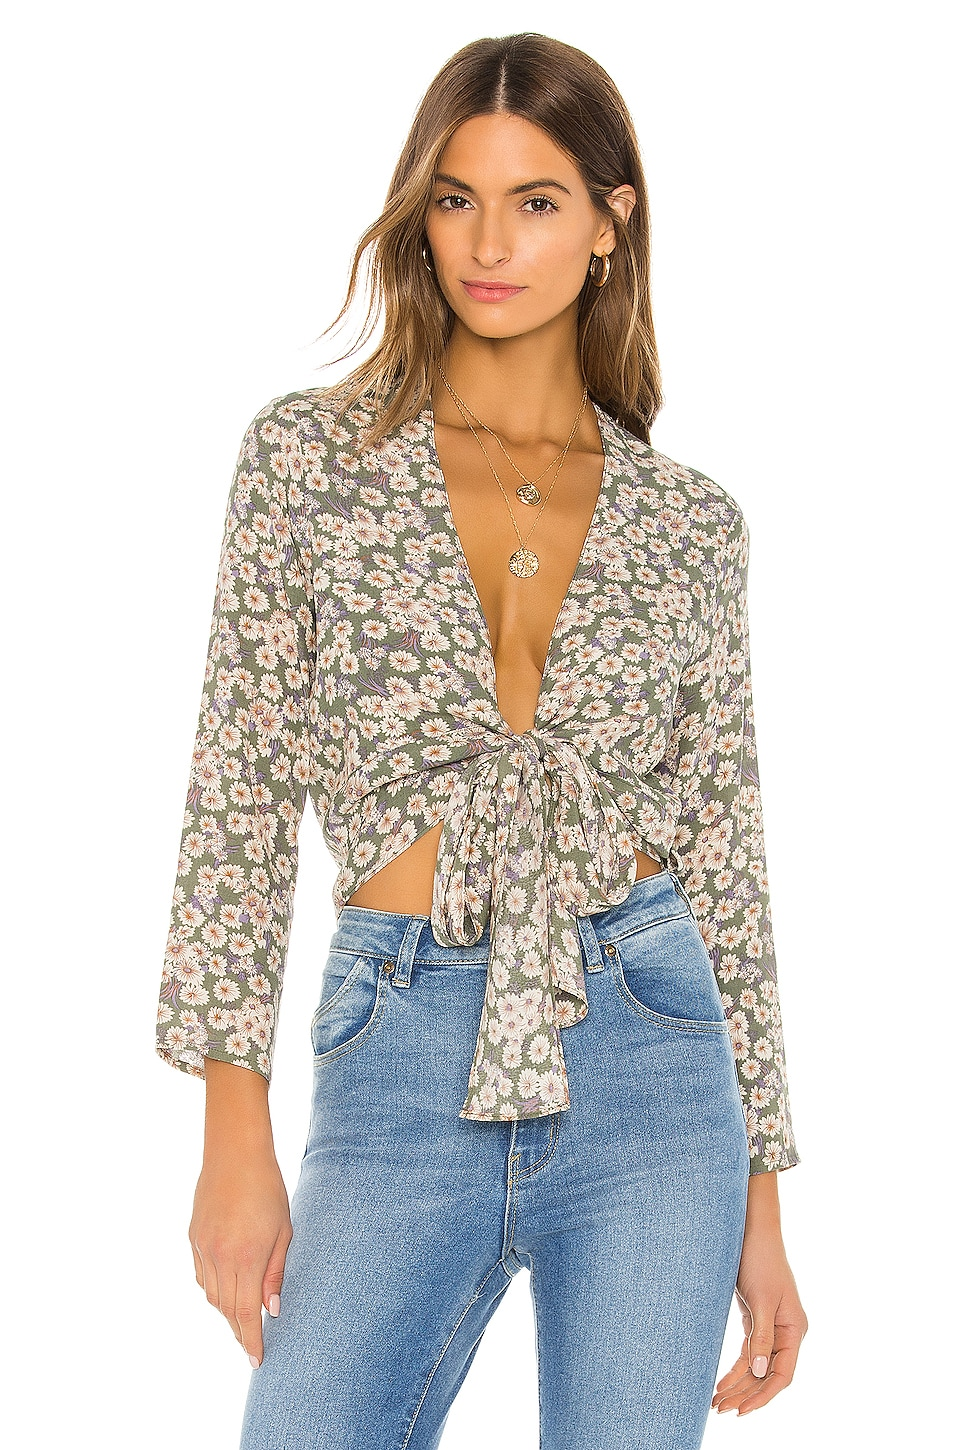 ROLLA'S Delilah Daisies Blouse in Olive